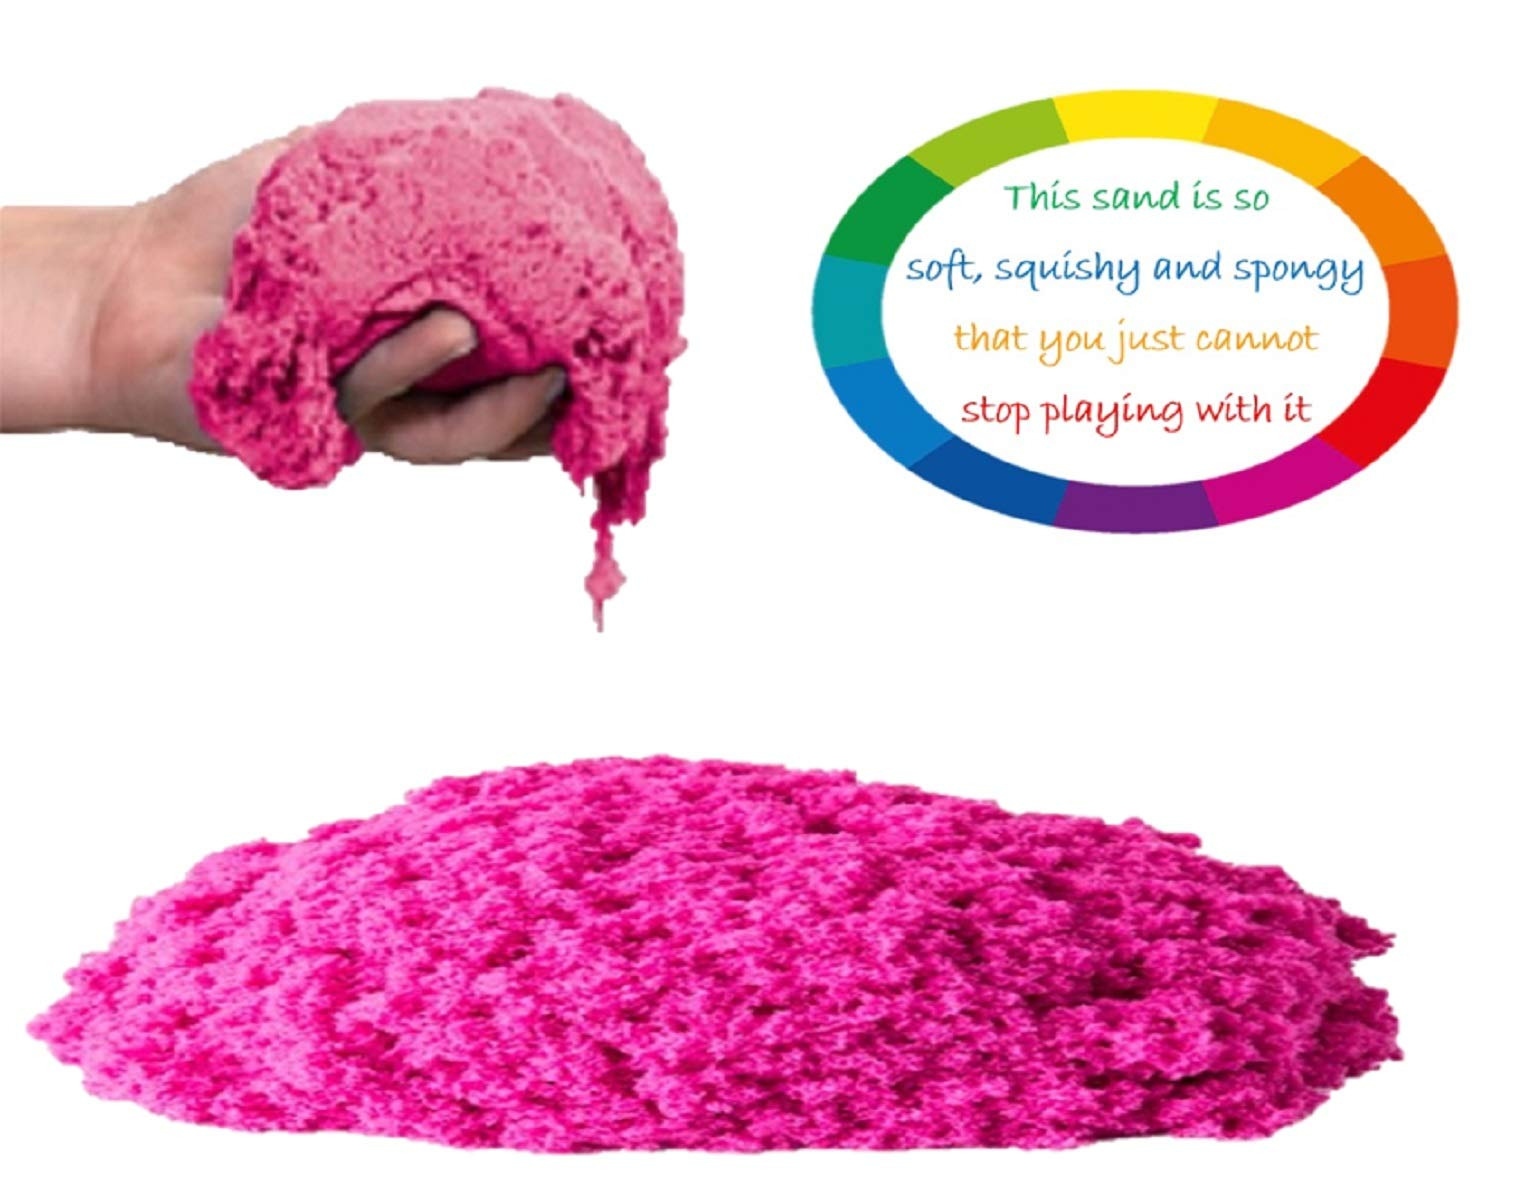 walla Play Sand (5 lbs.) | Pink Play Sand for Kids | Great Kinetic Sensory Toy for Creating Fun, Moldable Sand Art & Work On Fine Motor Skills | Bring The Beach to Your Home with Mess-Free Magic Sand by walla (Image #2)